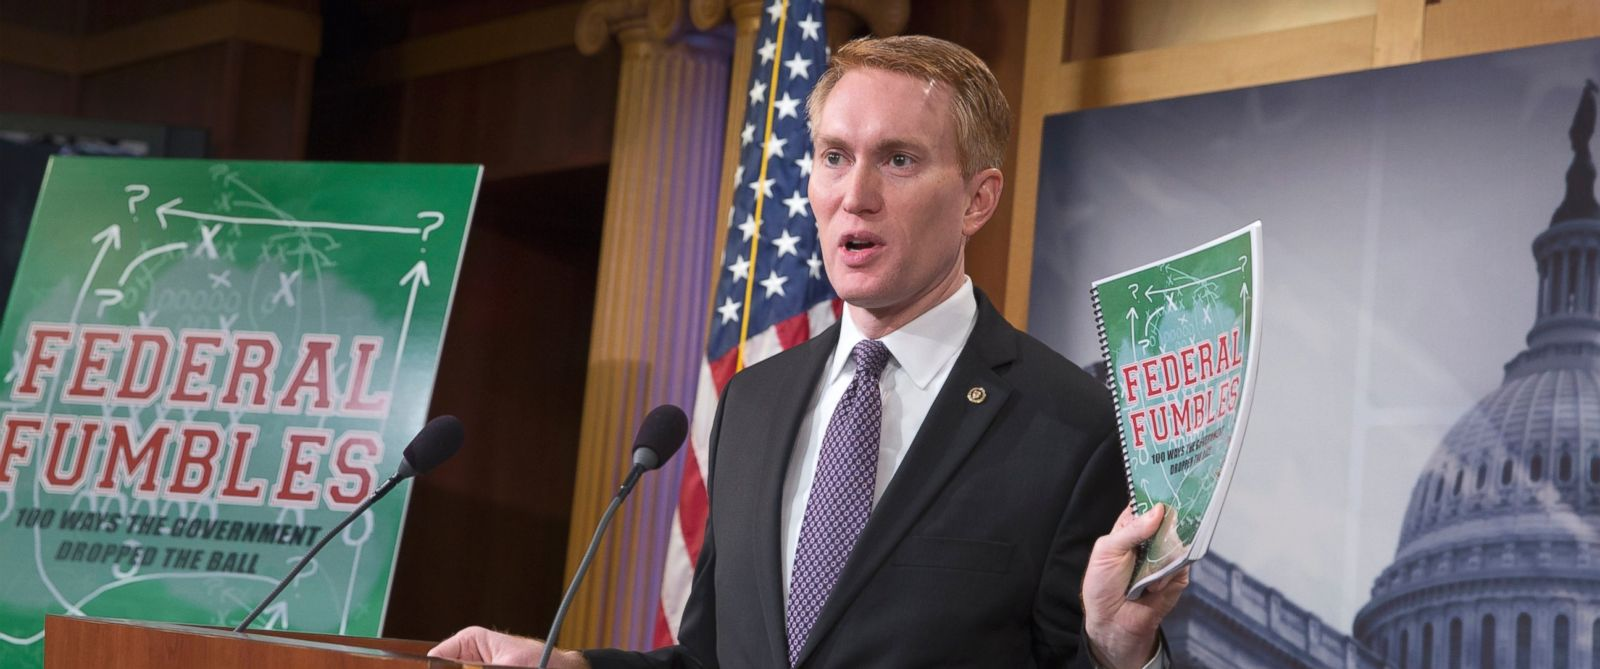 "PHOTO: Sen. James Lankford holds a news conference on Capitol Hill in Washington, Nov. 30, 2015, to announce the release of his federal government waste and solutions report titled ""Federal Fumbles: 100 Ways the Government Dropped the Ball."""